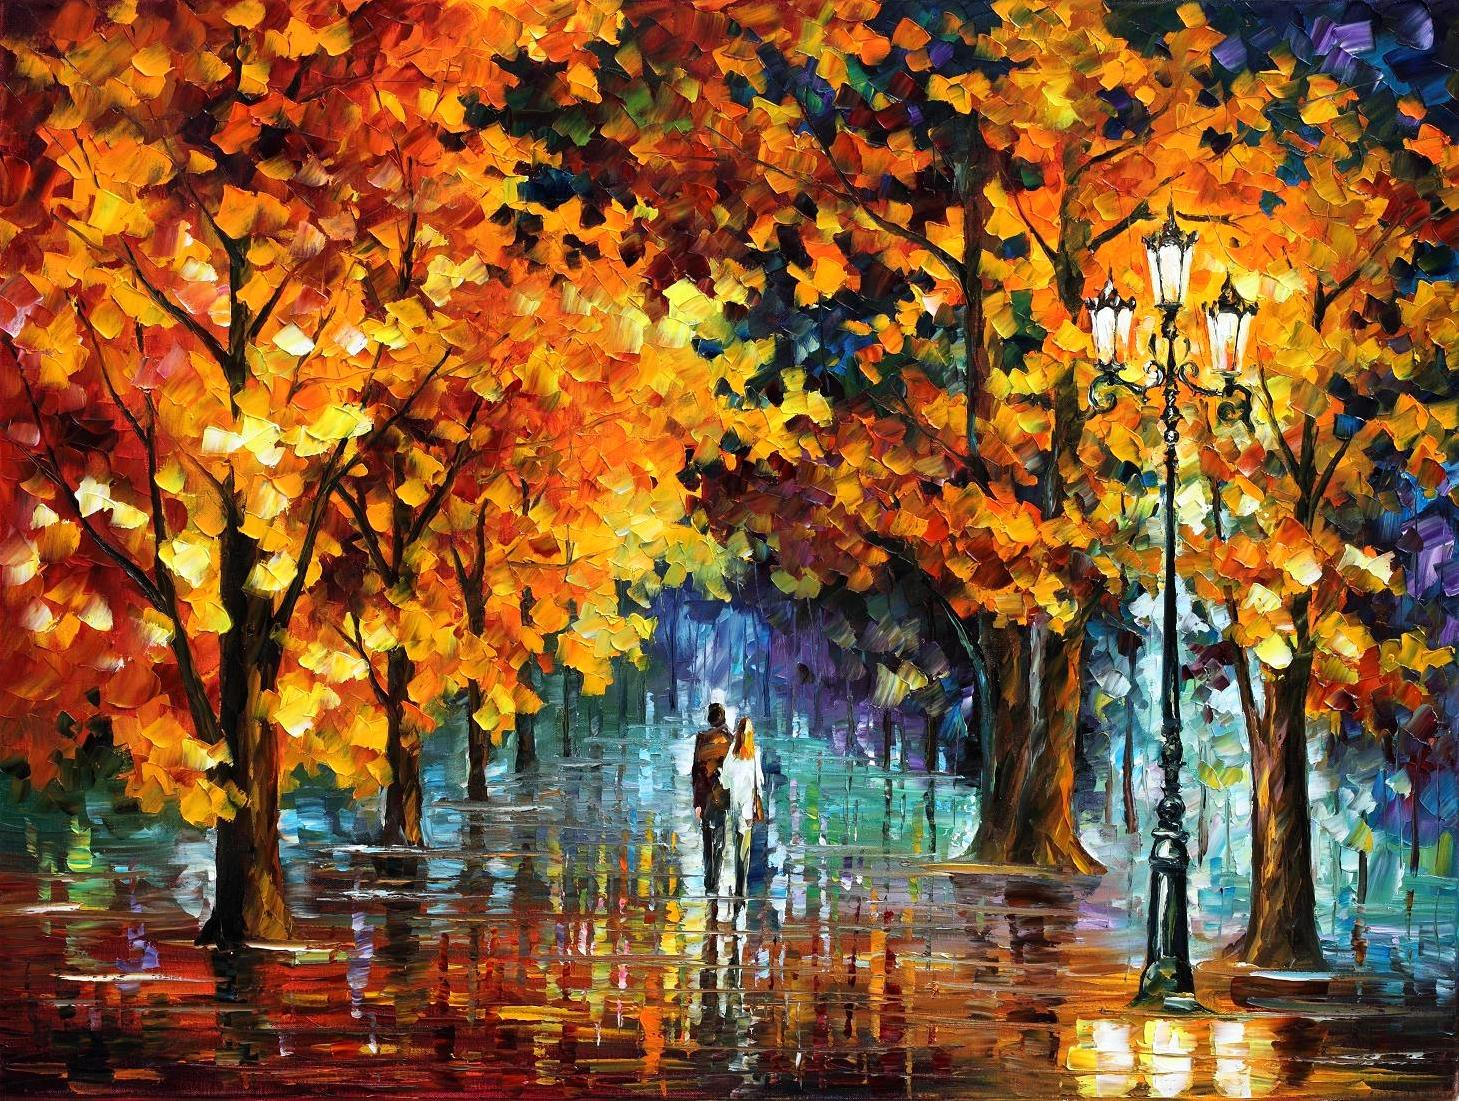 THE TEARS OF ANGELS — PALETTE KNIFE Oil Painting On Canvas By Leonid Afremov - Size 120x100